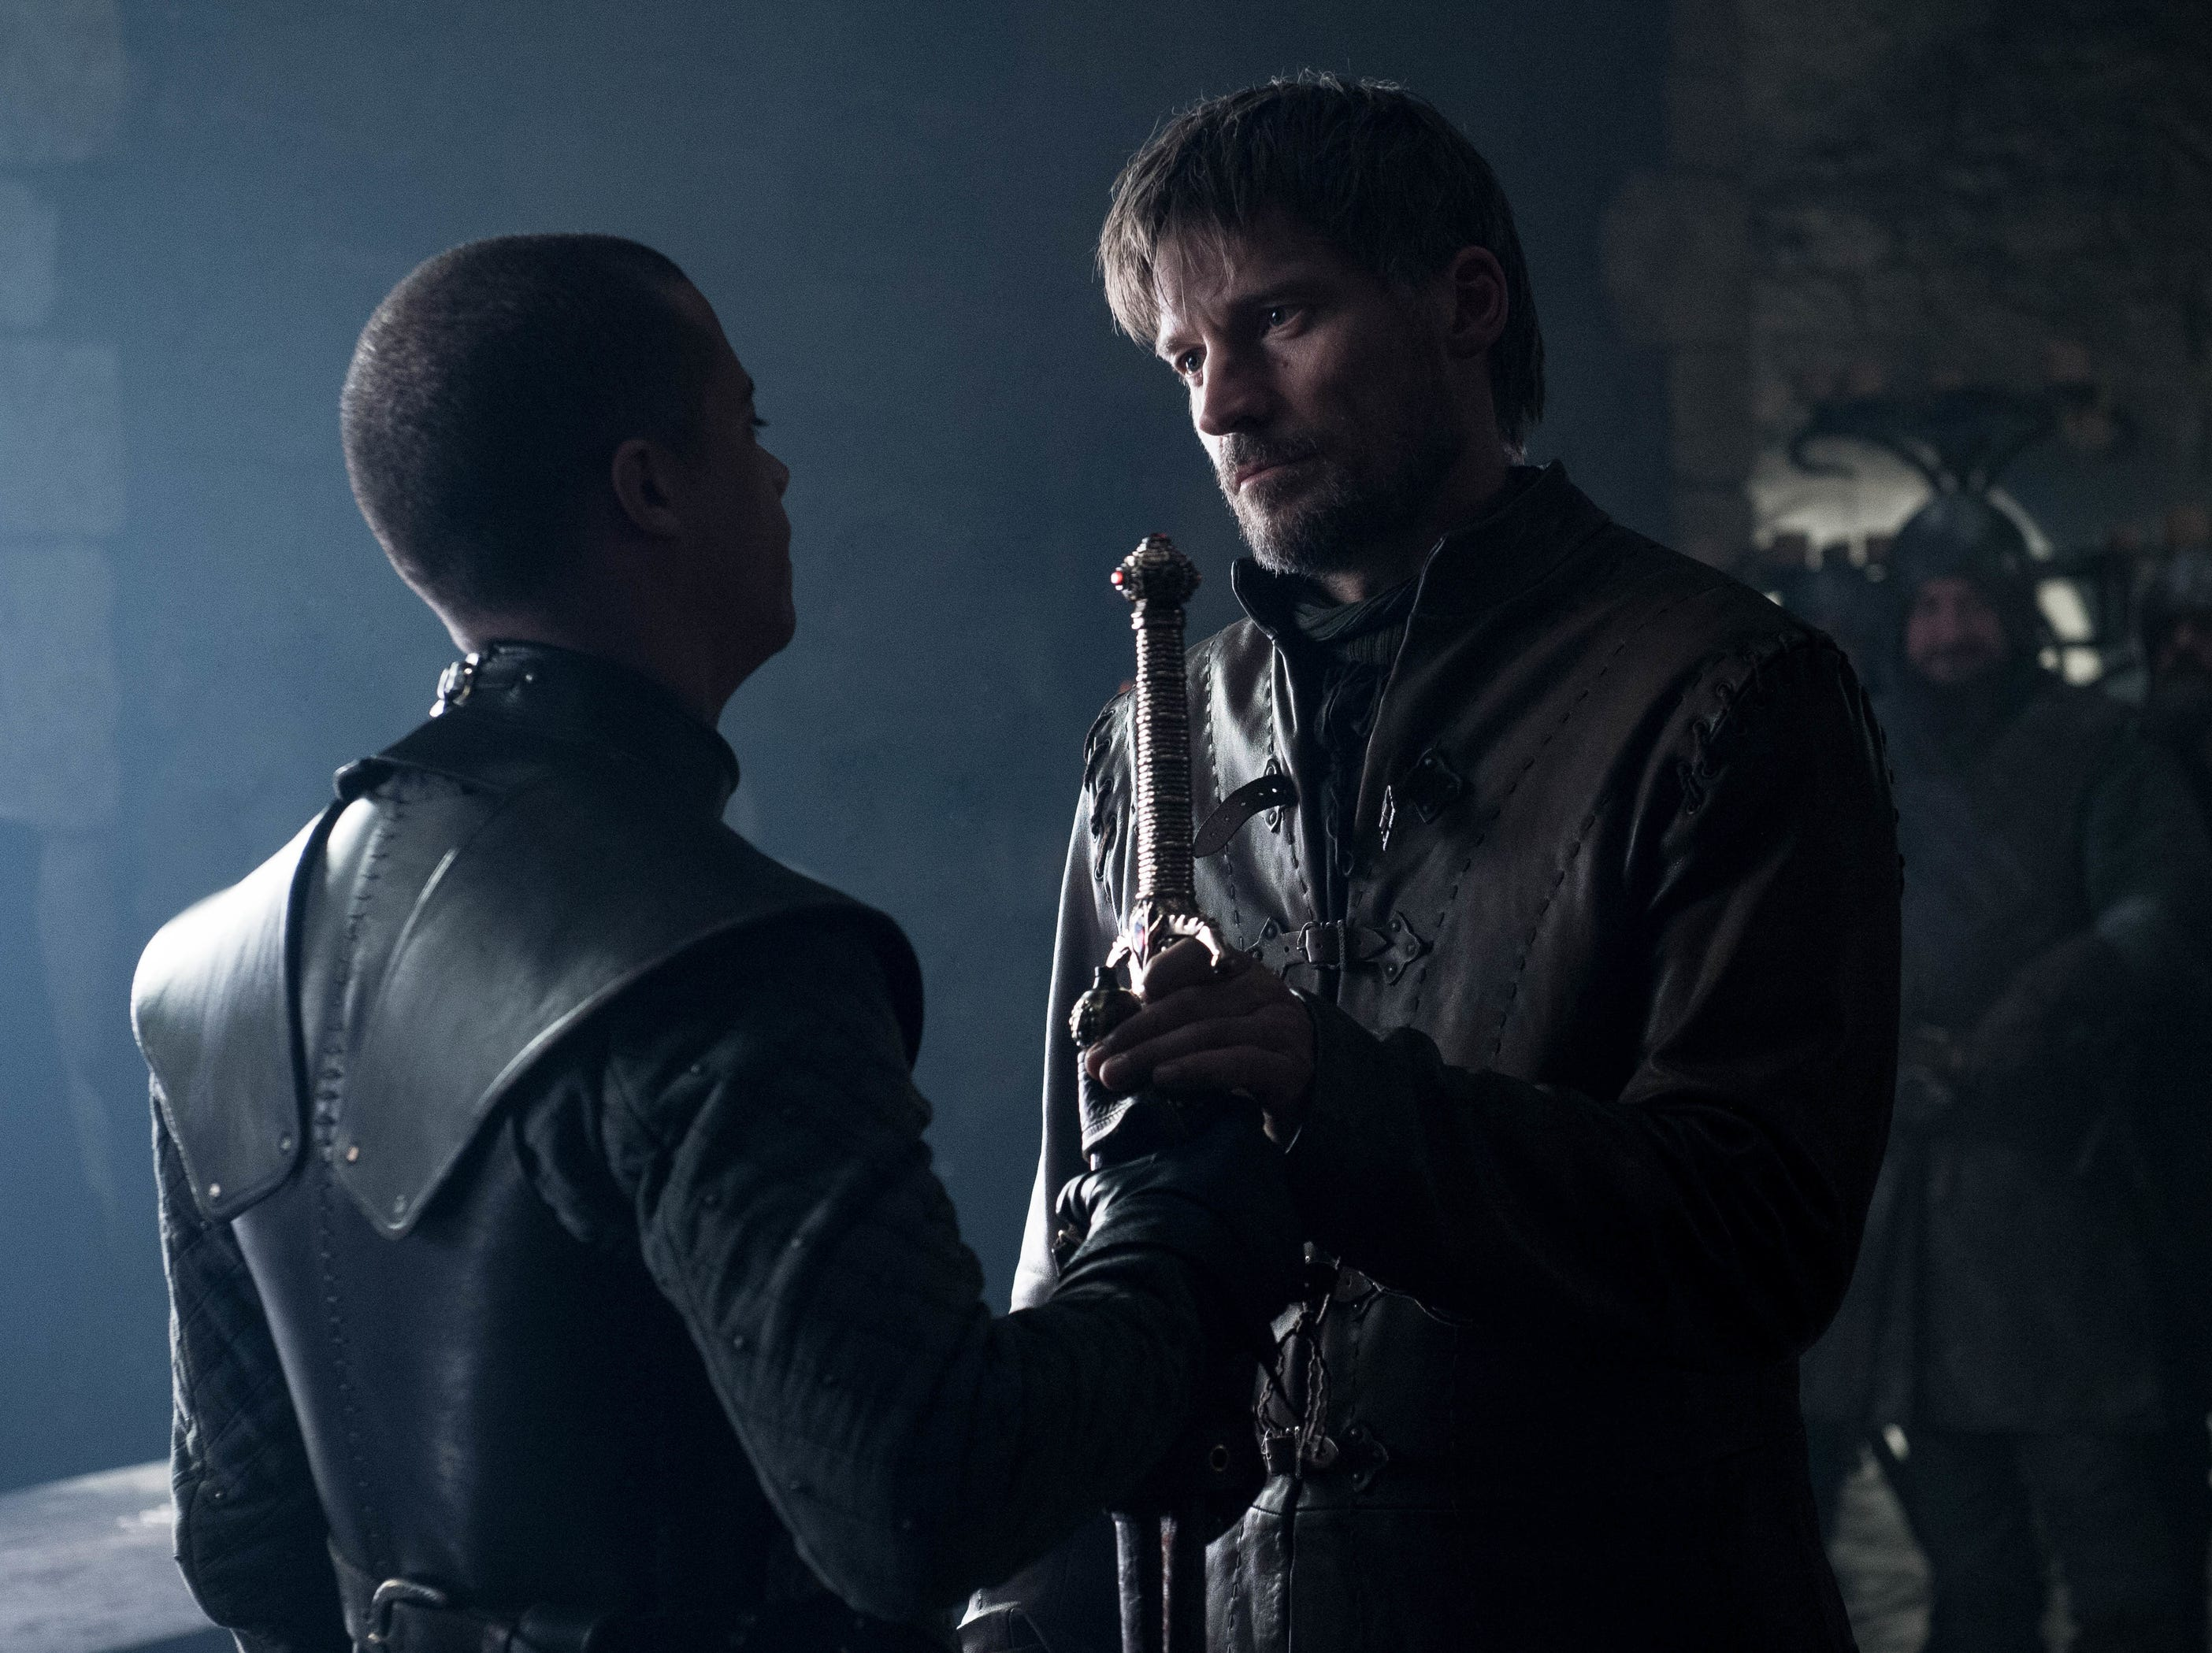 Jacob Anderson as Grey Worm, left, and Nikolaj Coster-Waldau as Jaime Lannister in 'Game of Thrones.'